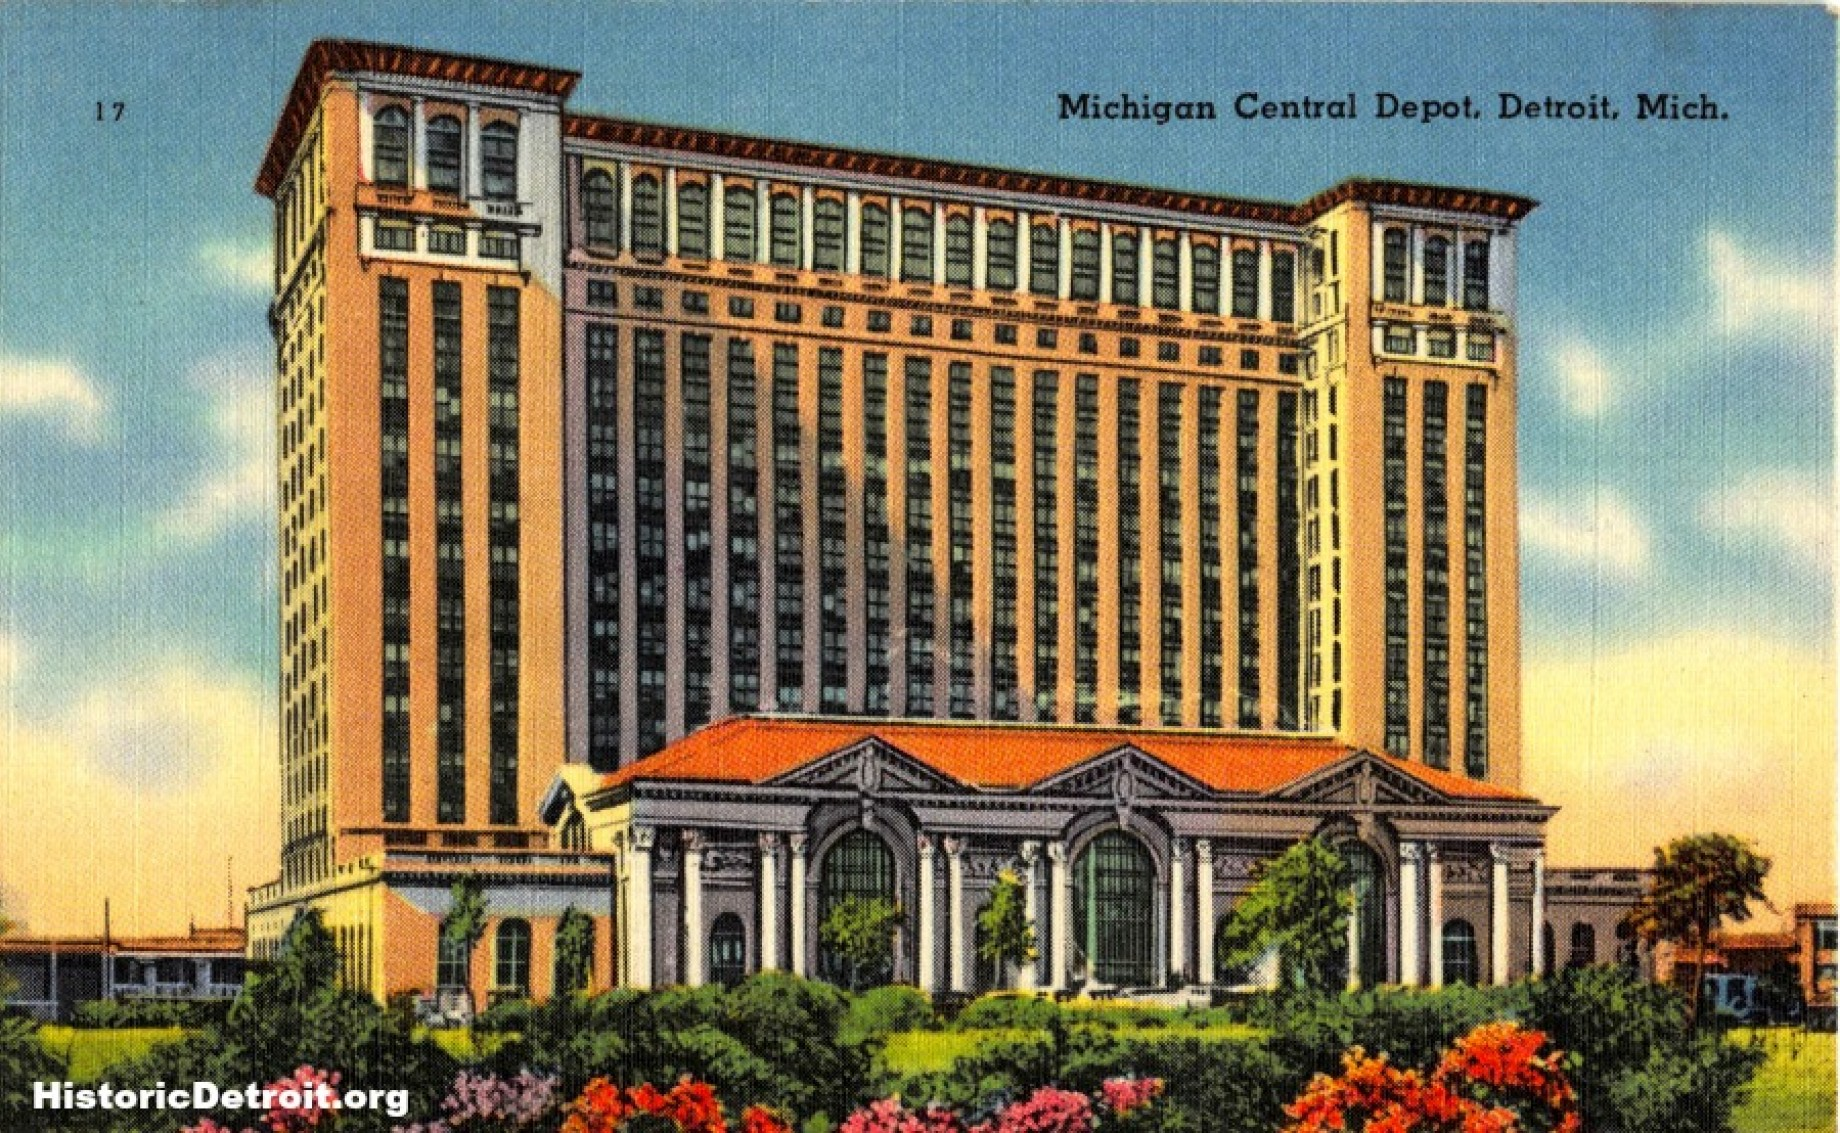 Postcard for Michigan / Penn Central Station (image from Historic Detroit)